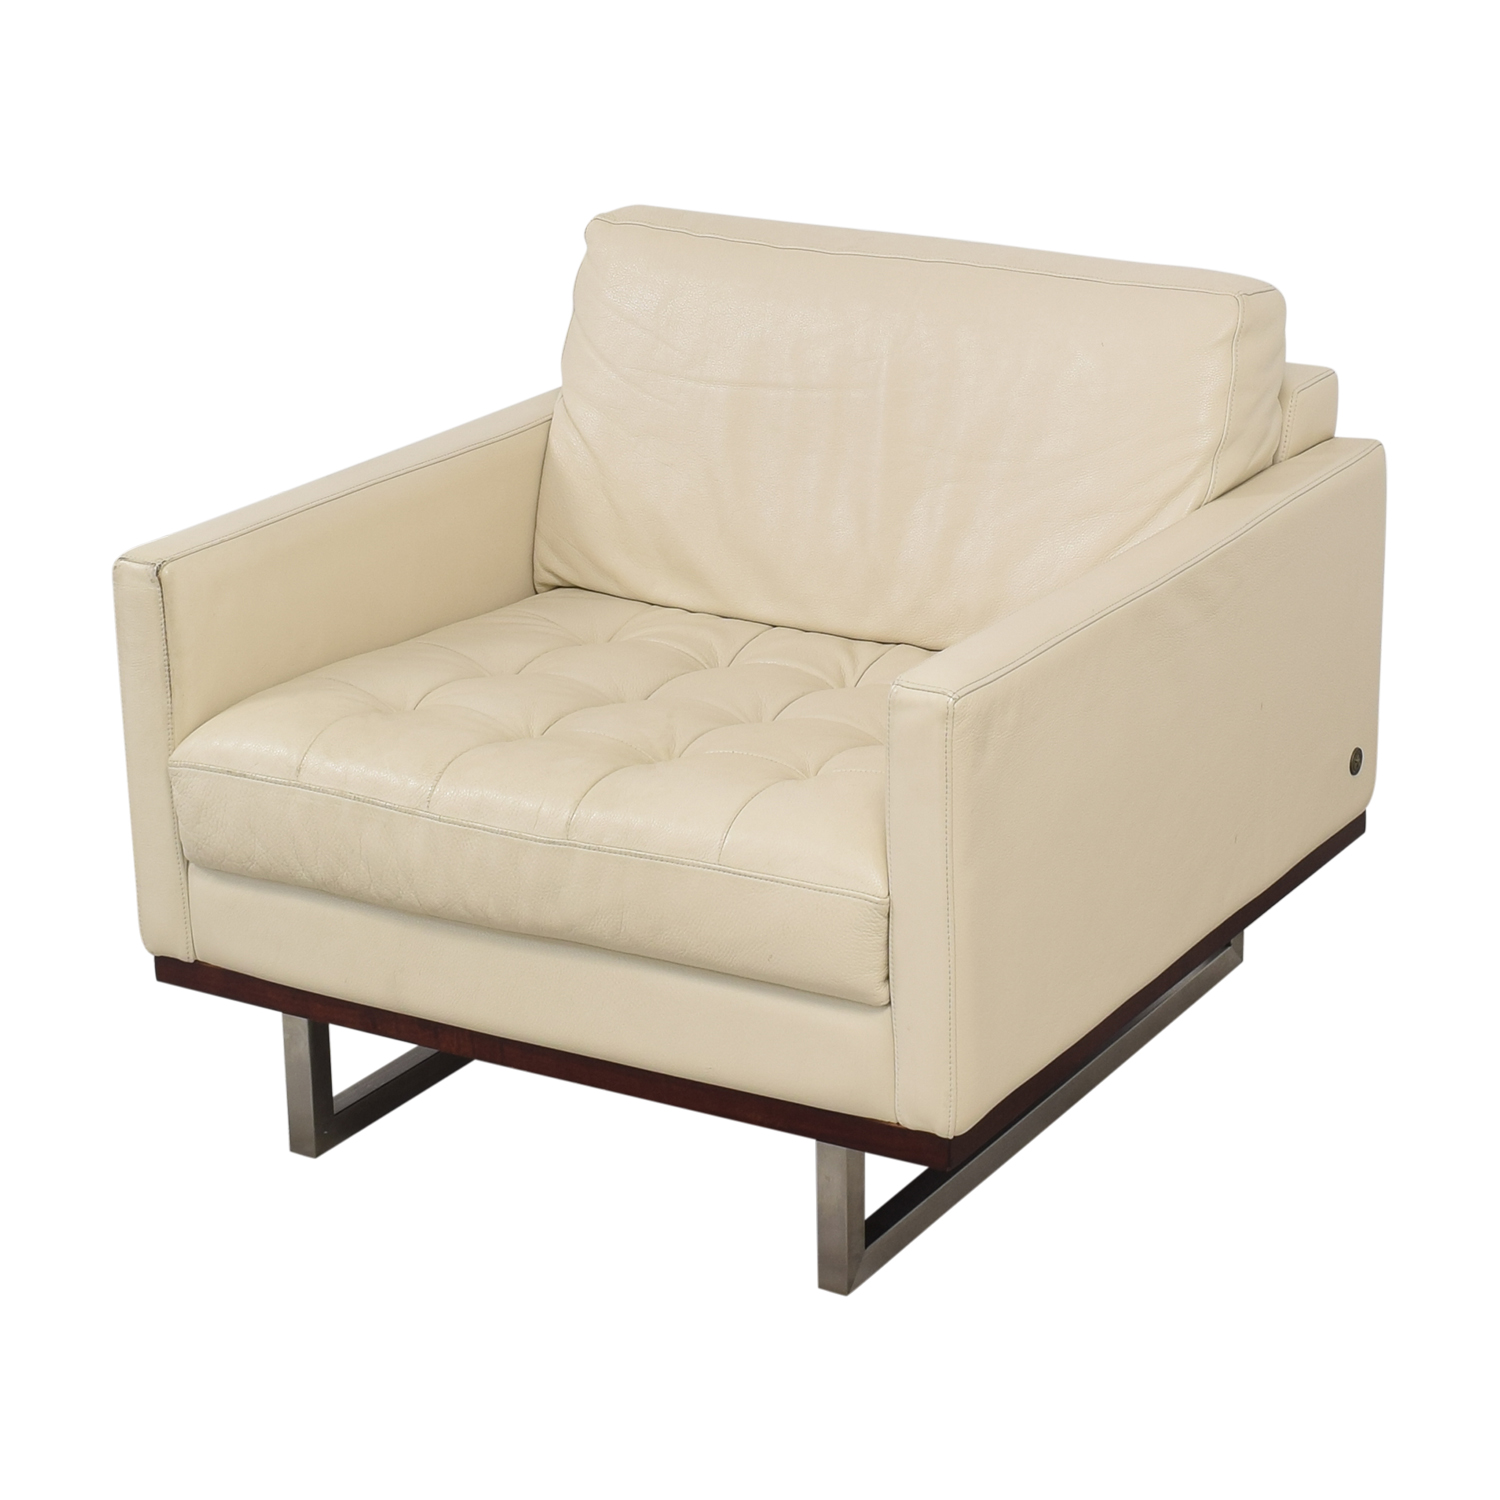 American Leather American Leather Mid Century Armchair price